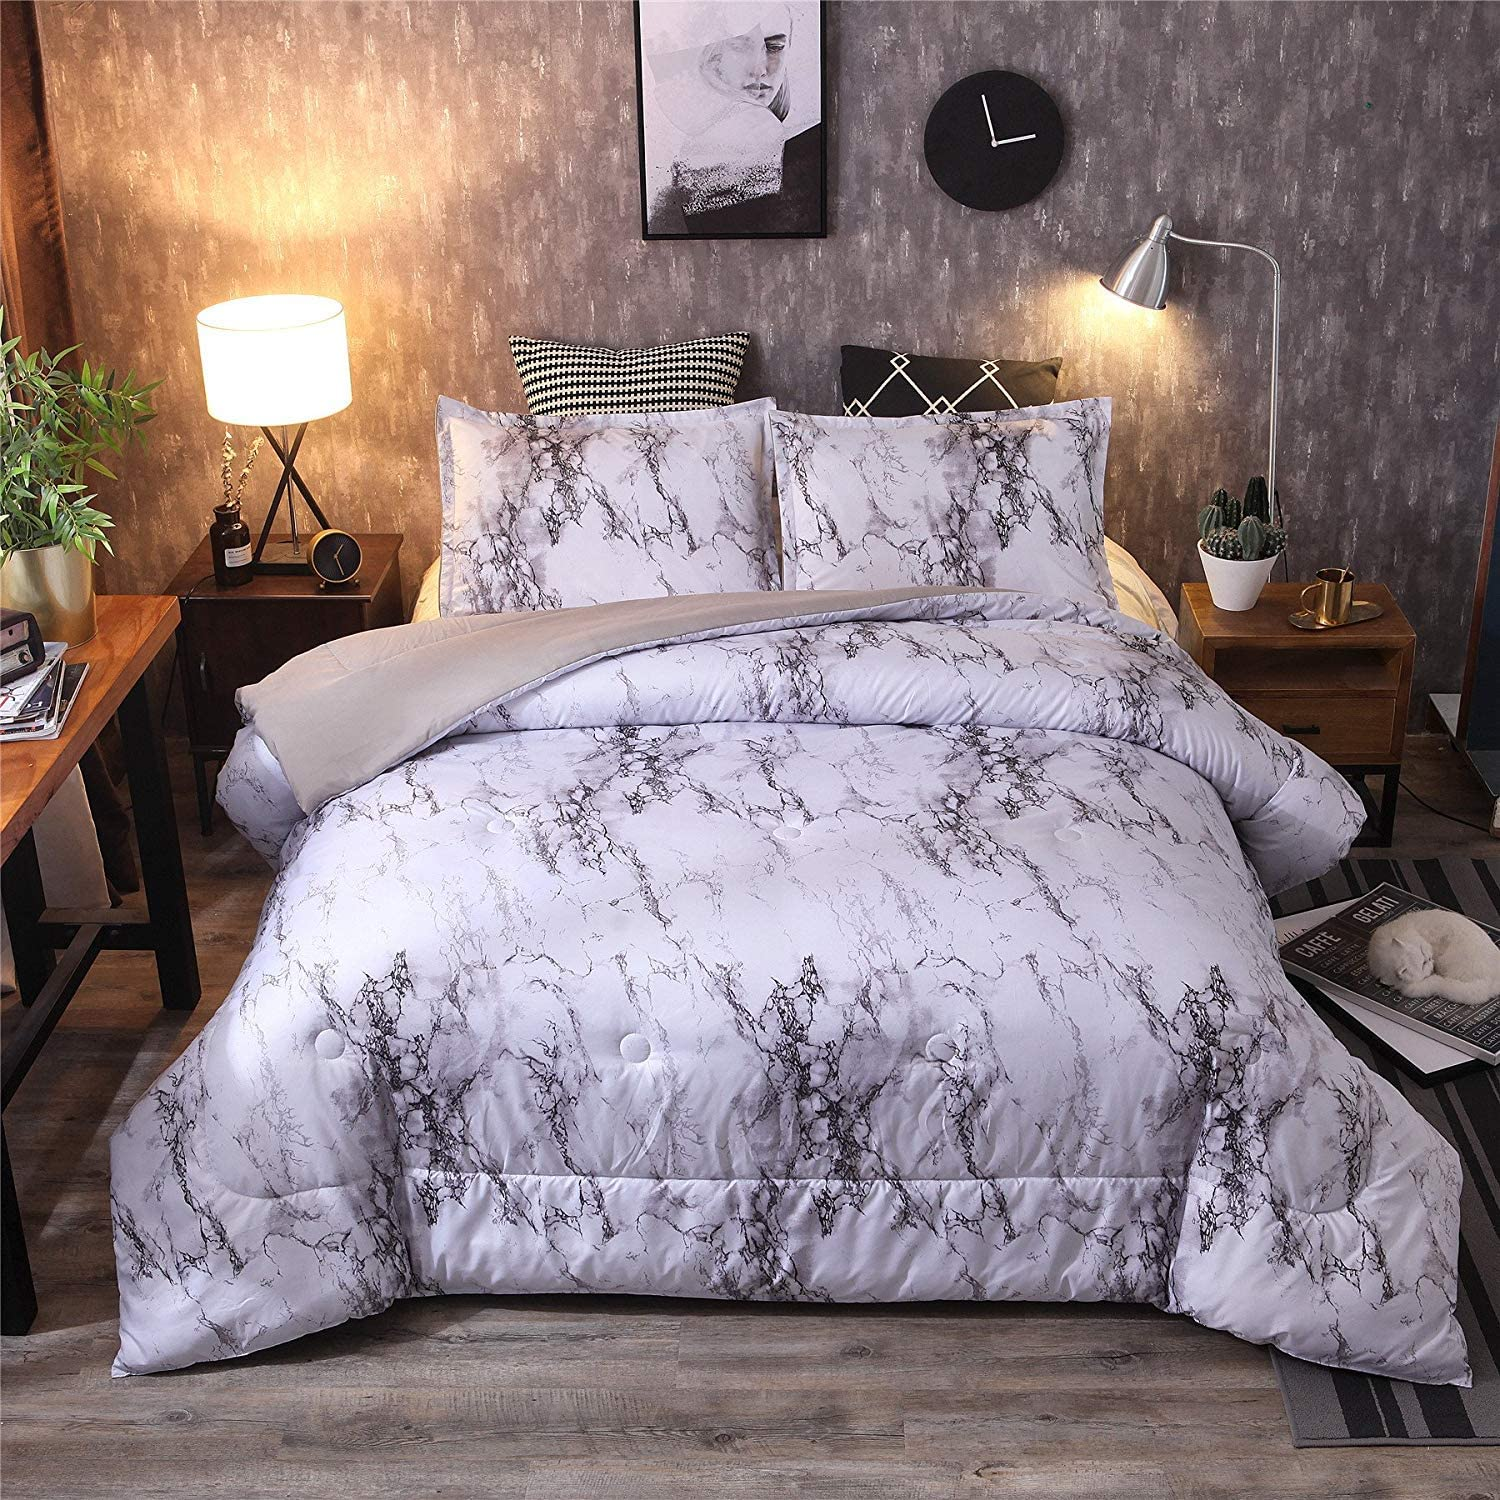 Purple-Marble A Nice Night Marble Design Quilt Comforter Set Bed-in-a-Bag,Queen